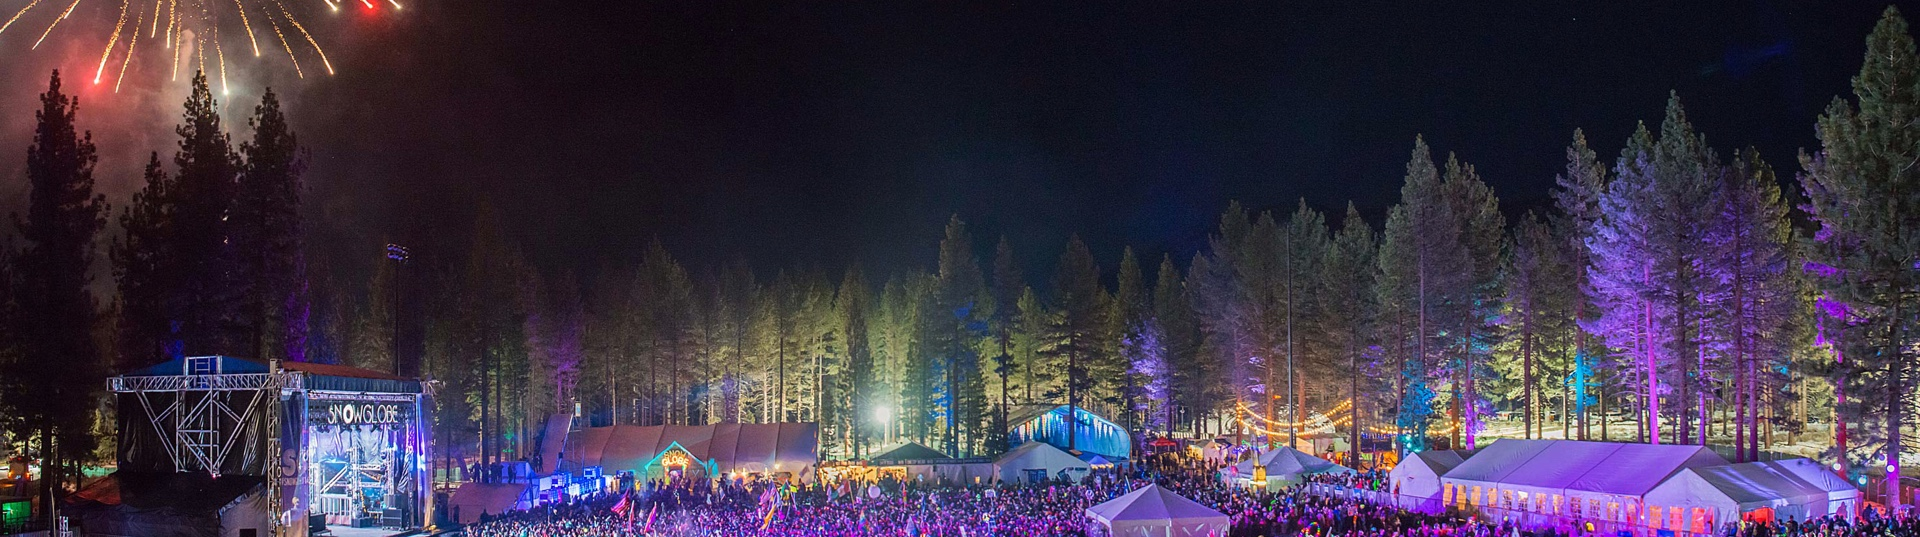 SnowGlobe Music Festival, South Lake Tahoe, CA